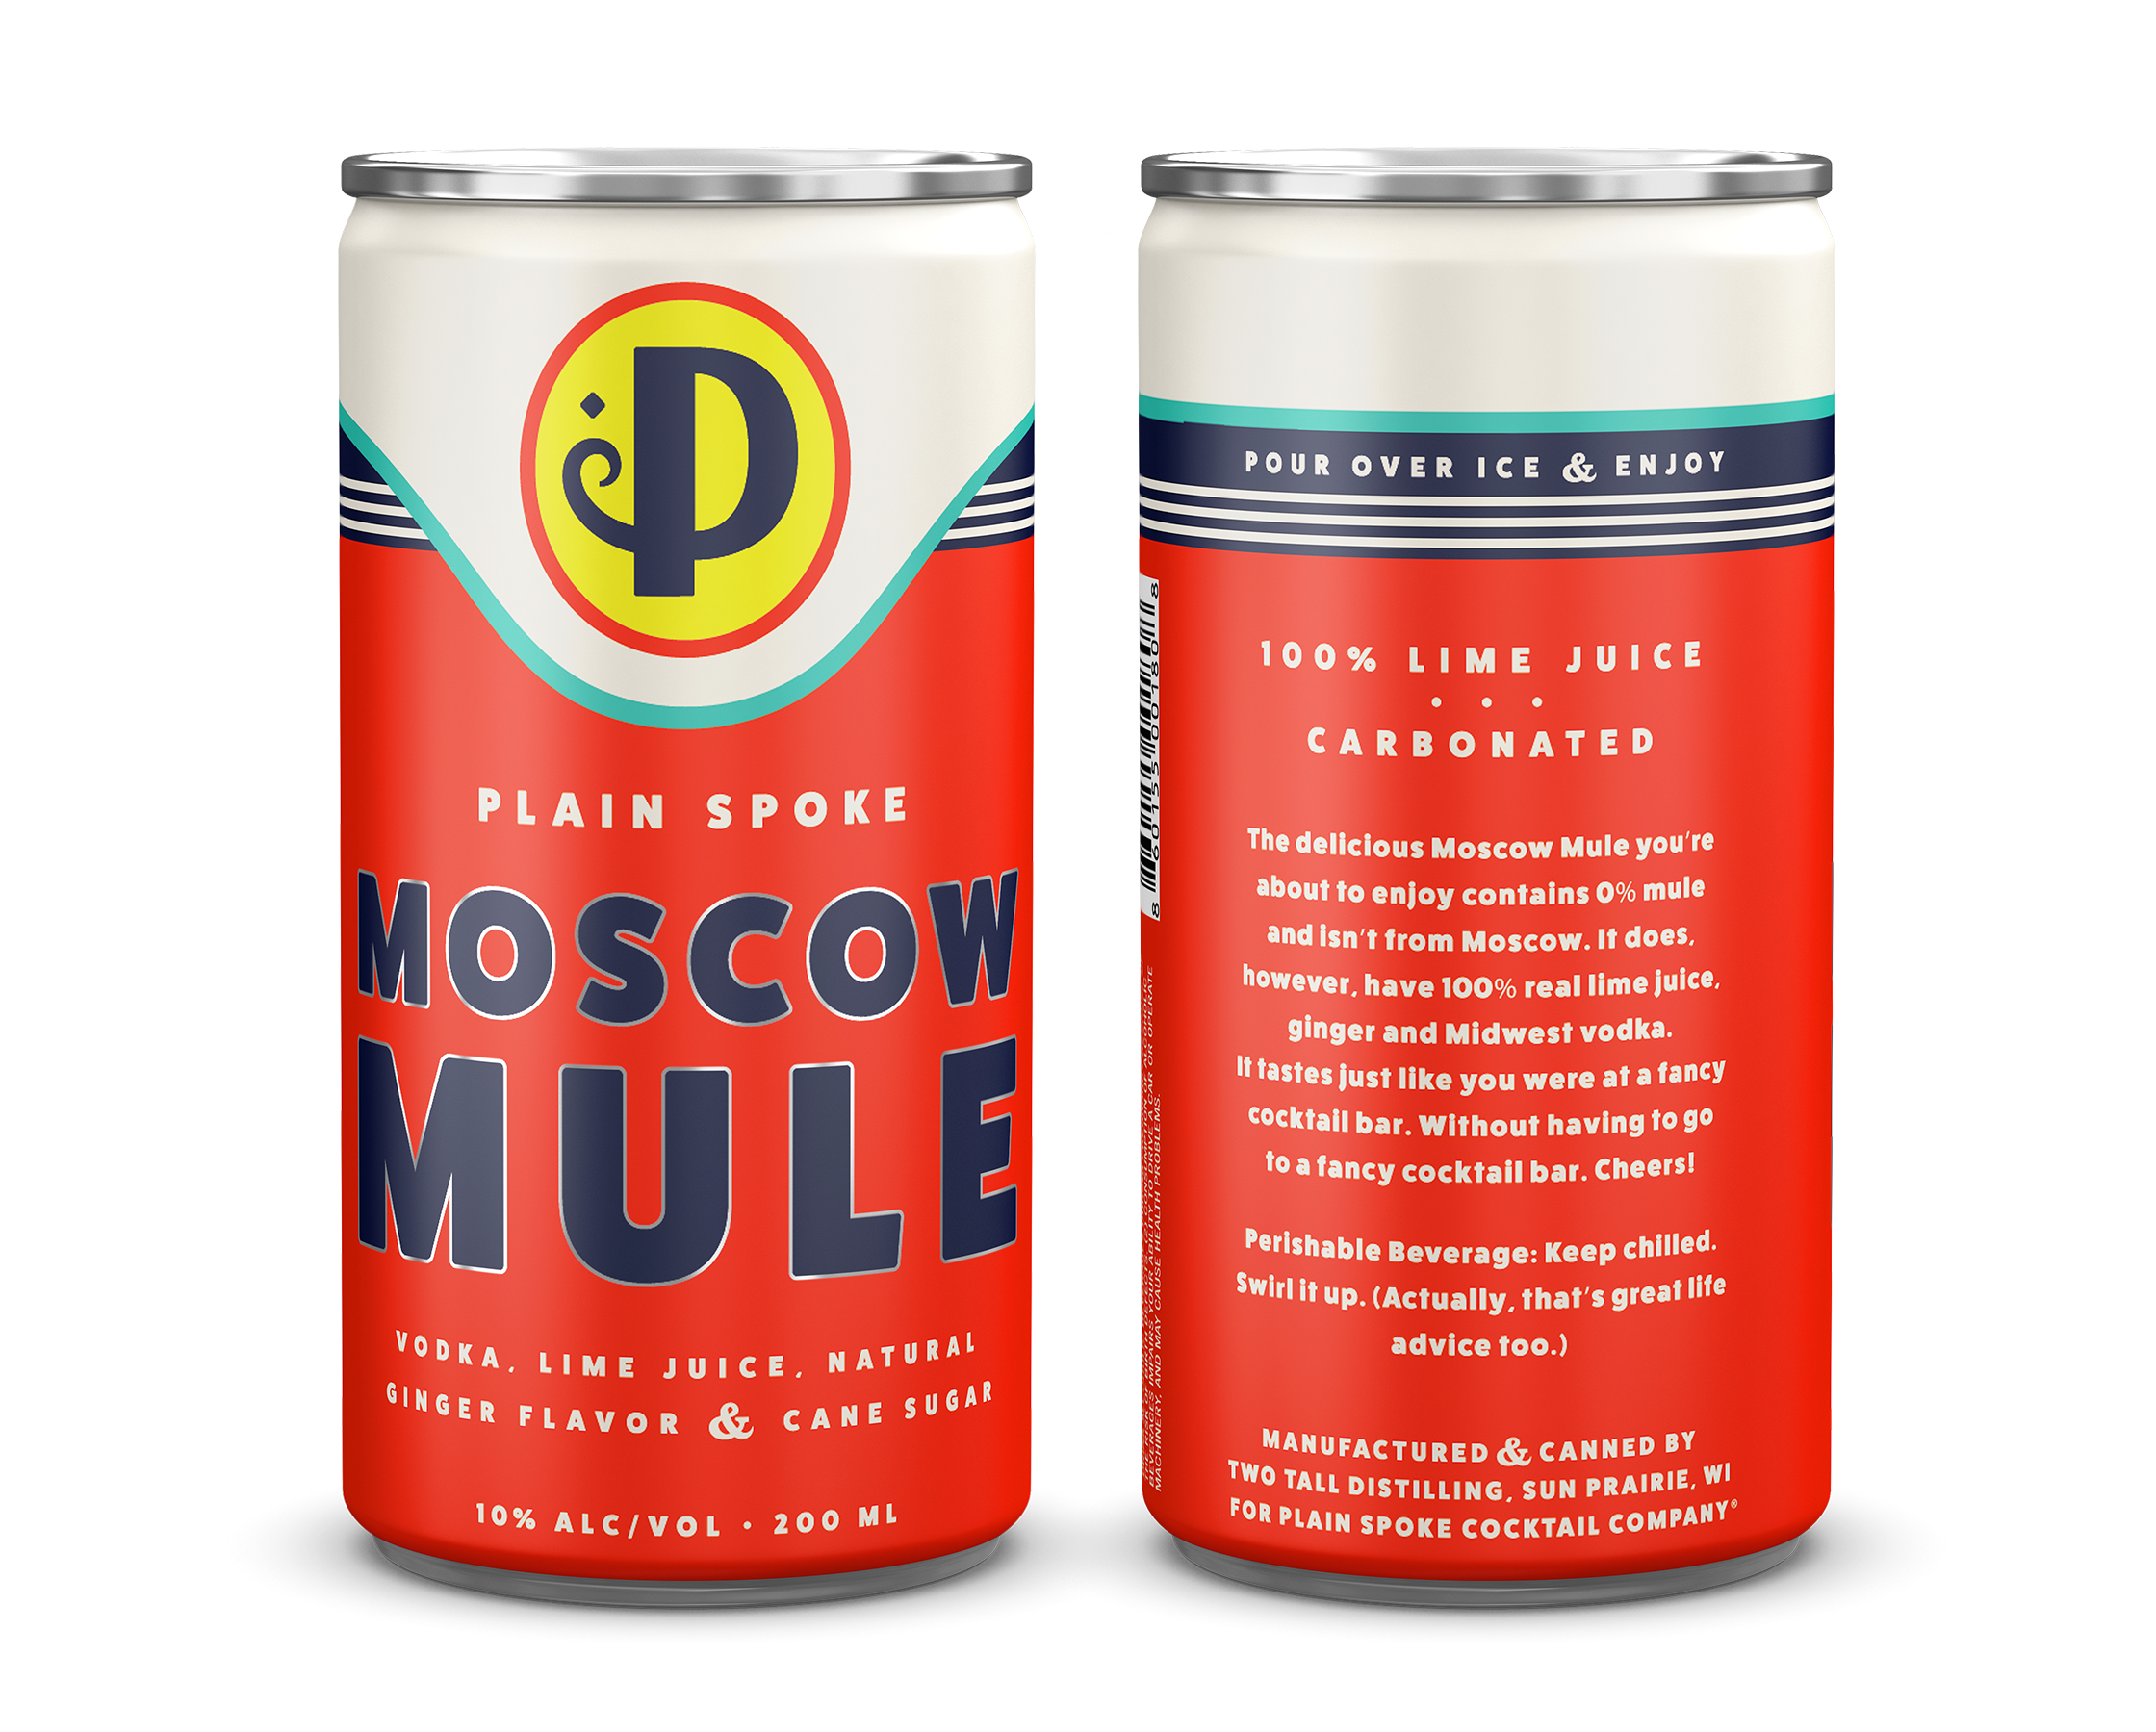 Ready-to-Drink Cocktails in a Can Branding and Packaging with a Slight Vintage and Midwestern Aesthetic